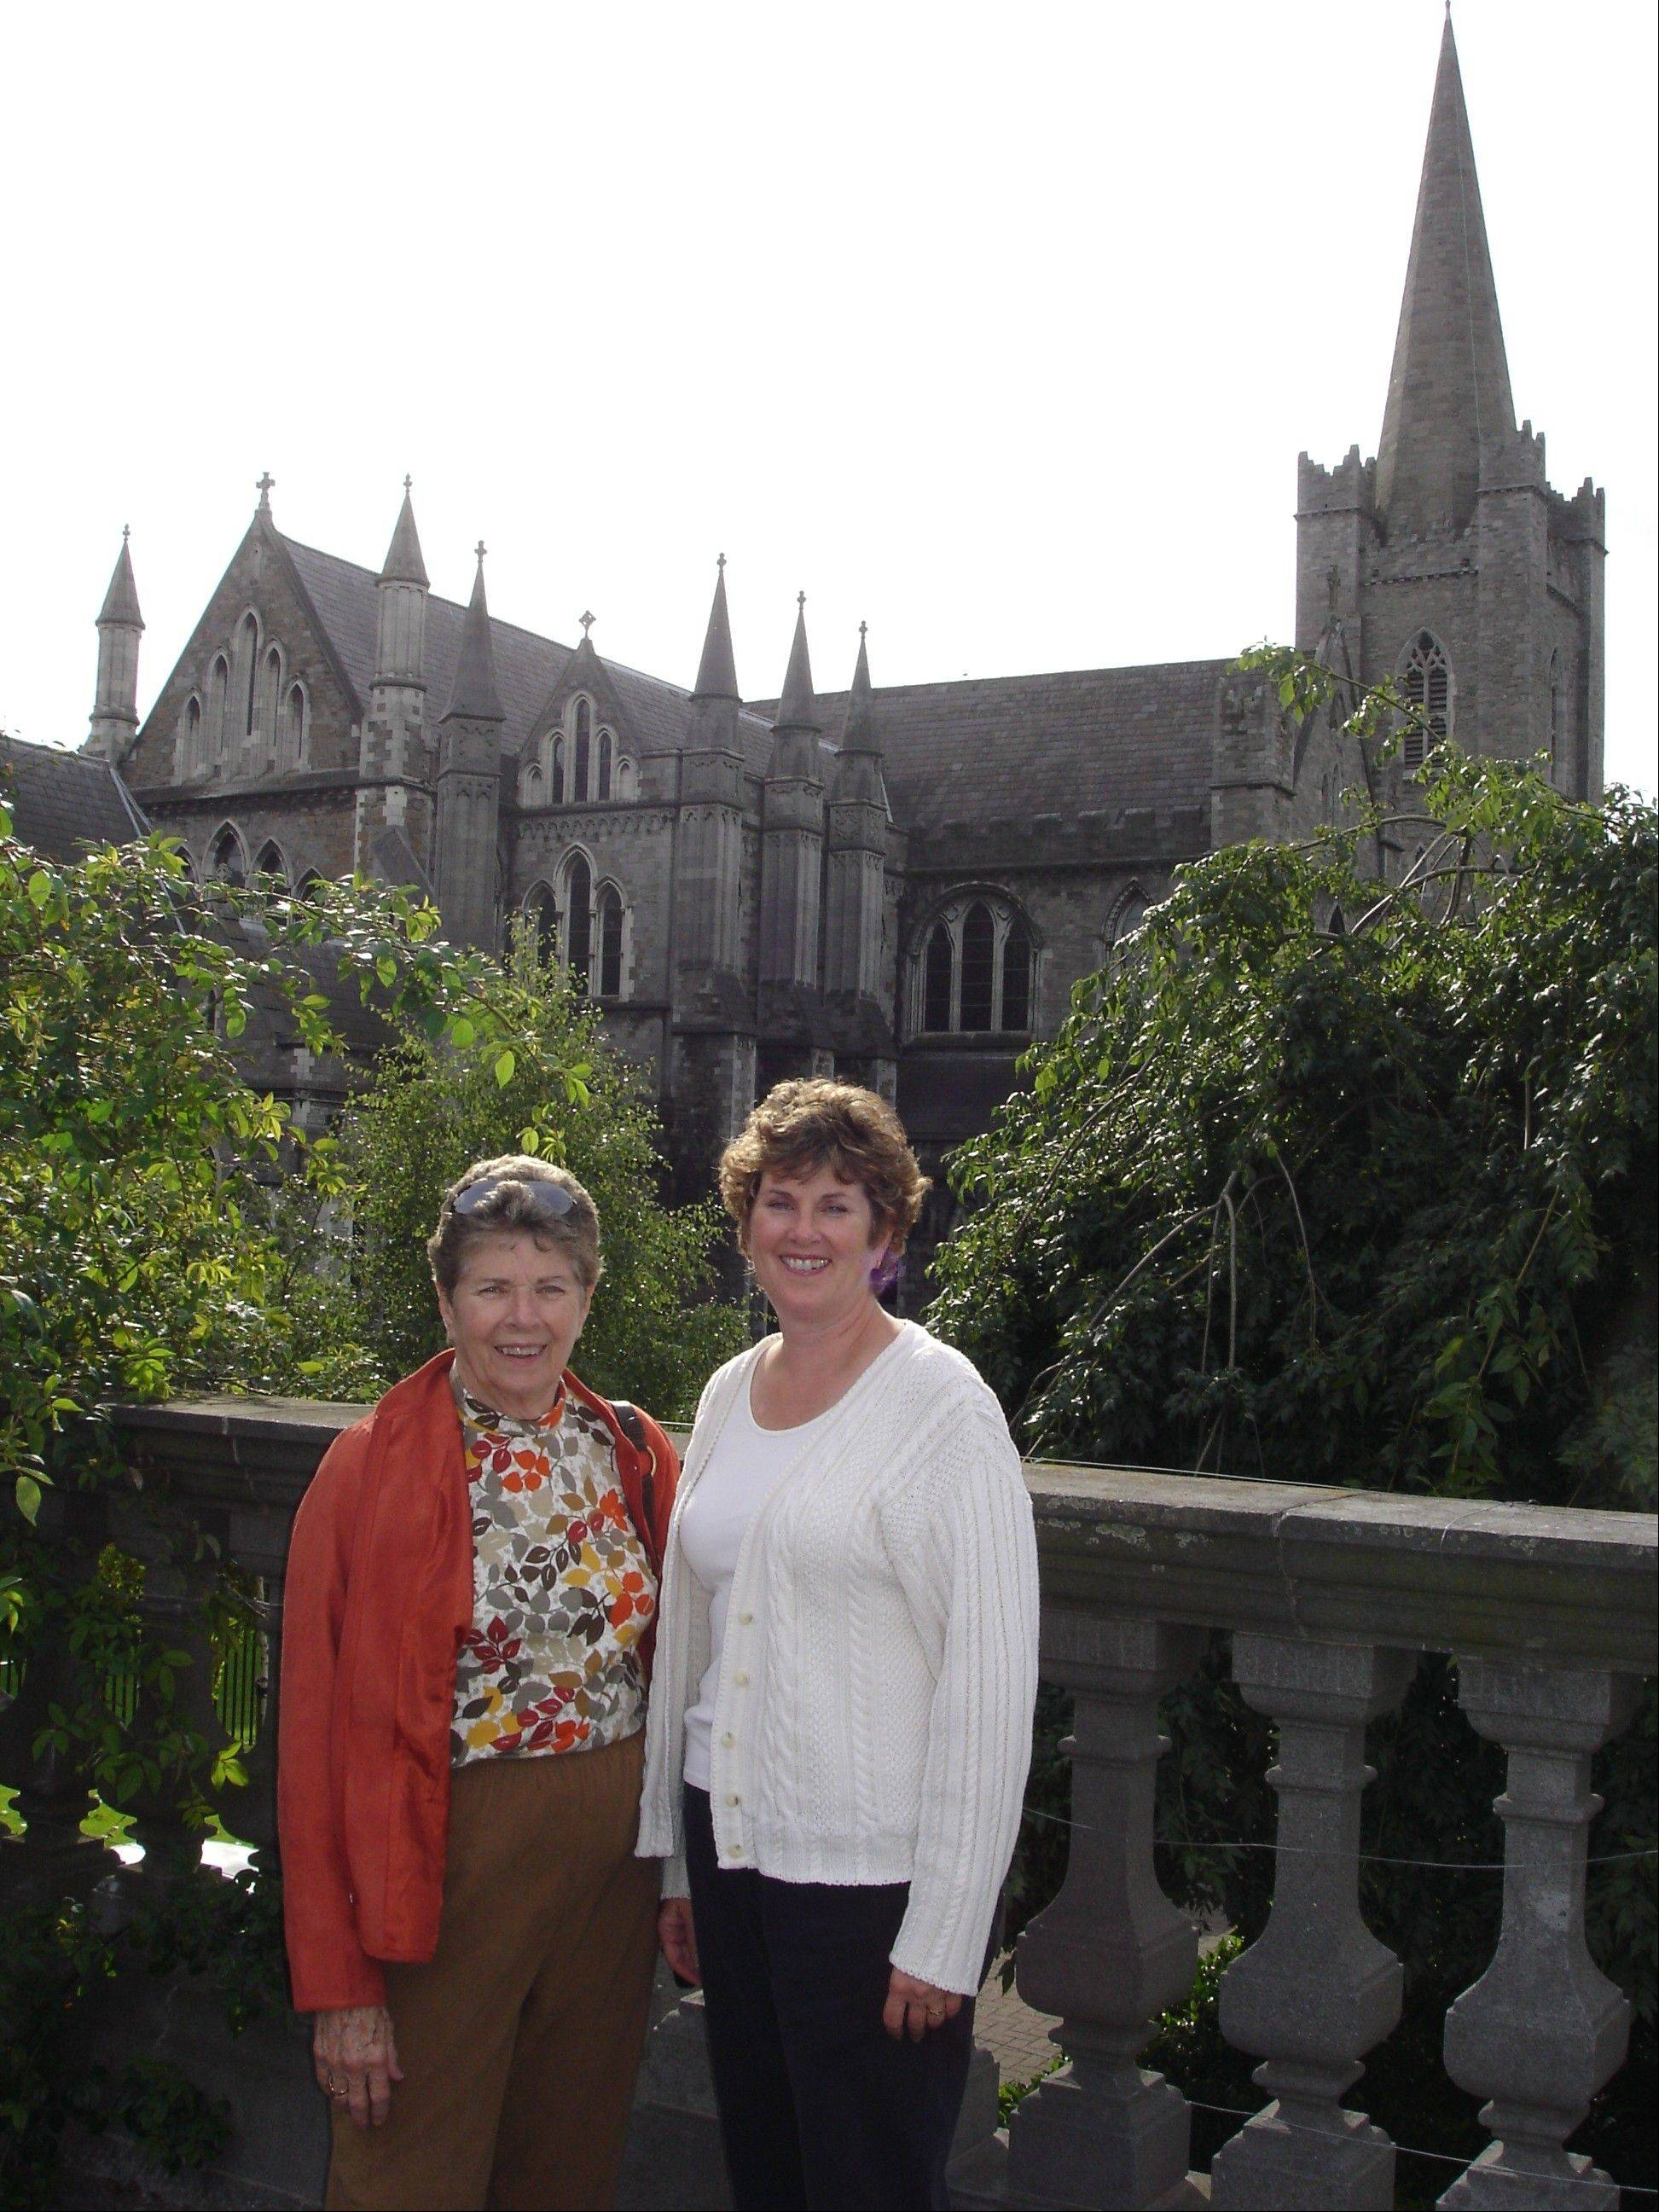 Former Wheeling Village President Sheila Schultz taught the value of community service to her daughter, Kathy Ryg, who is seen here with her mom during a 2006 family trip to Ireland.